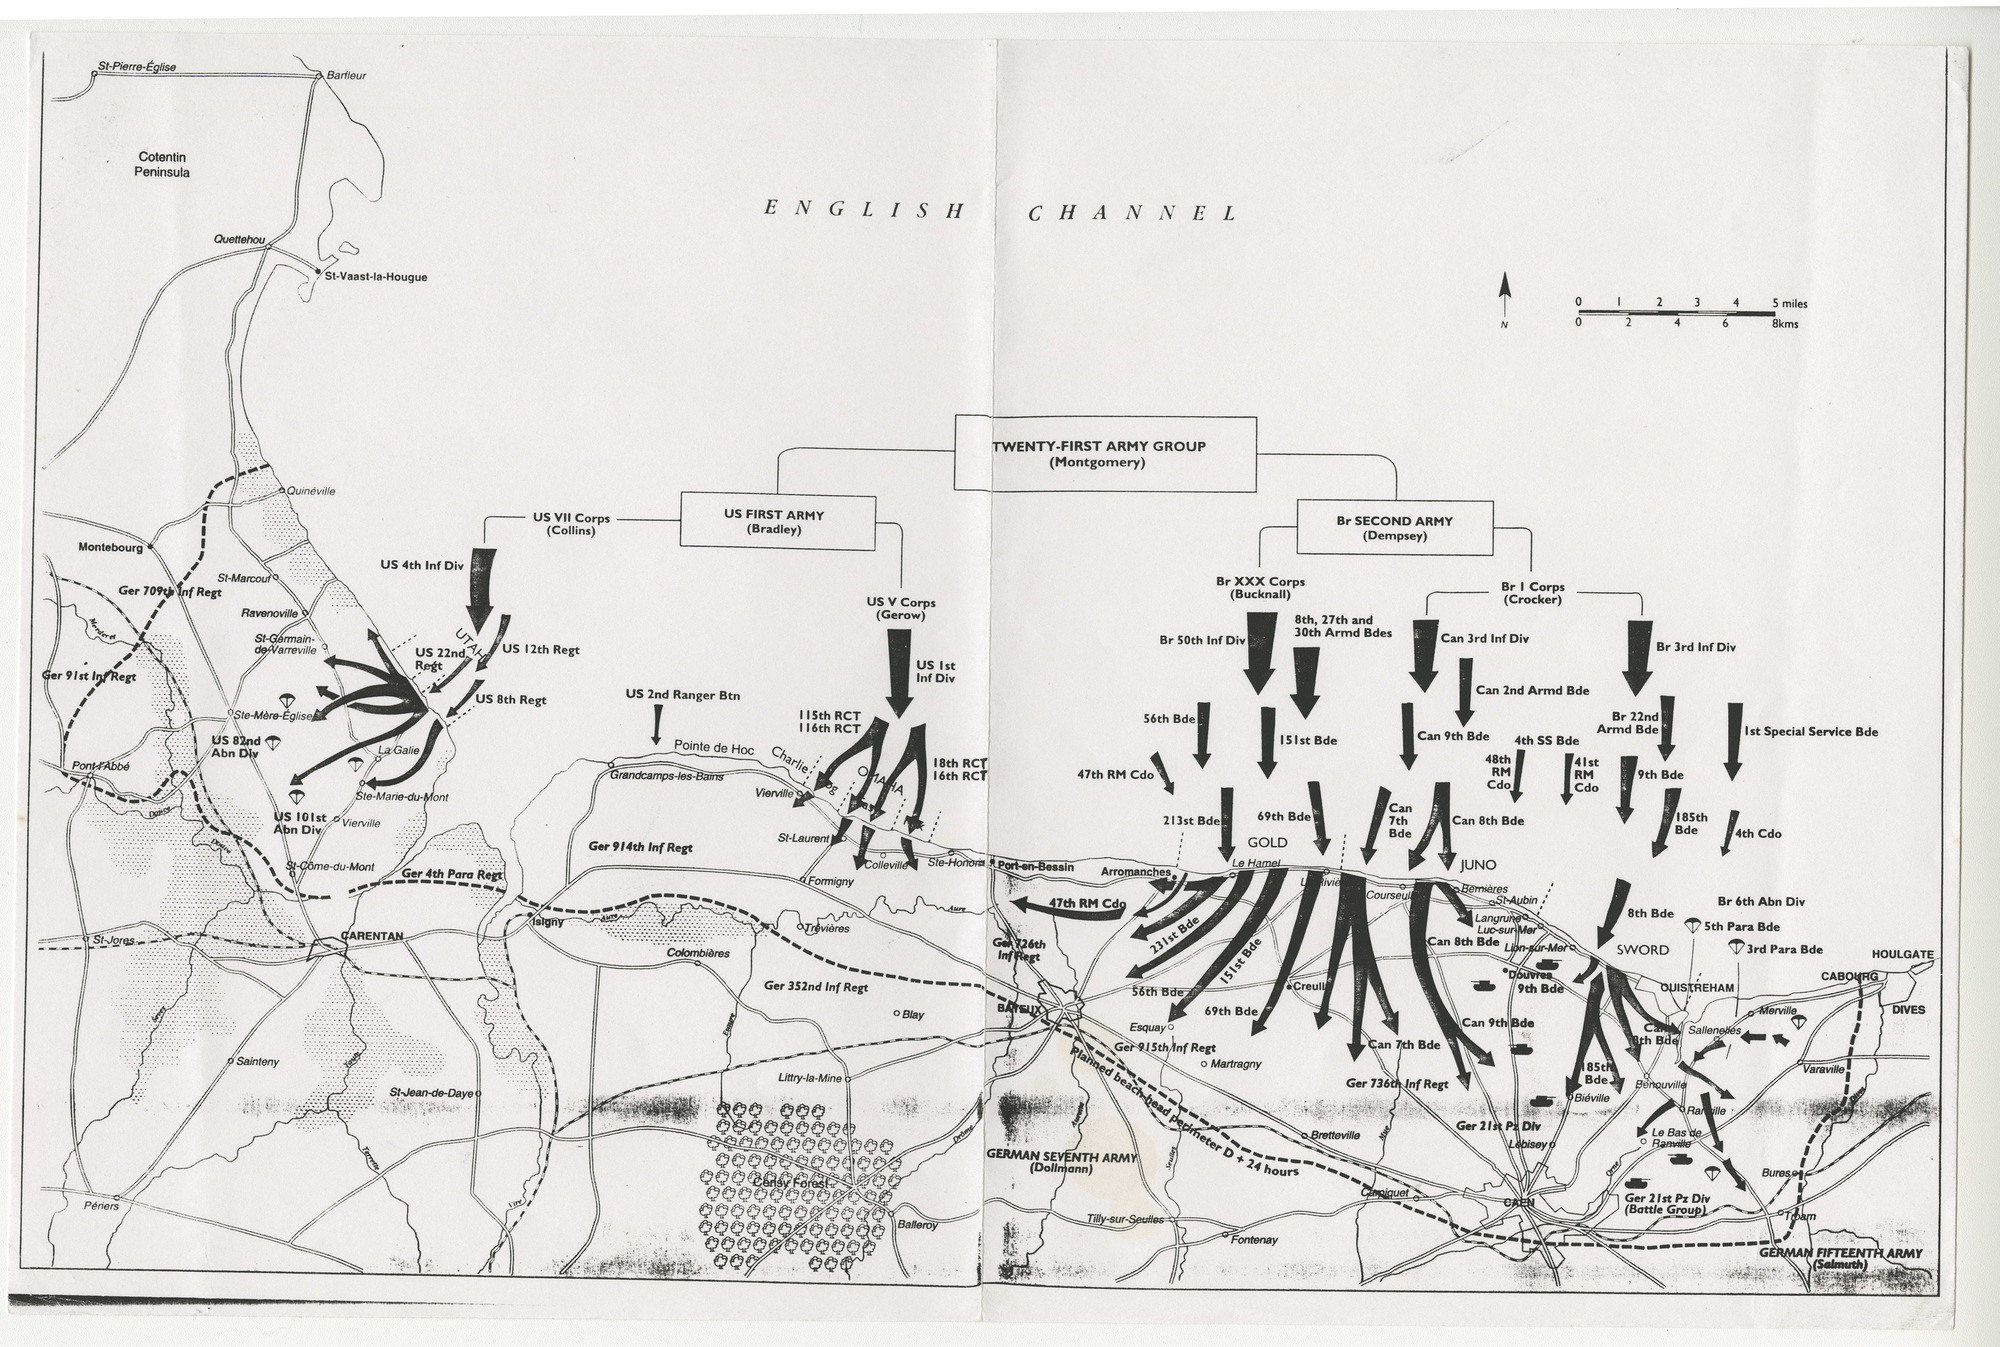 Ms1990_062_F36_Map of D-Day Invasion.jpg